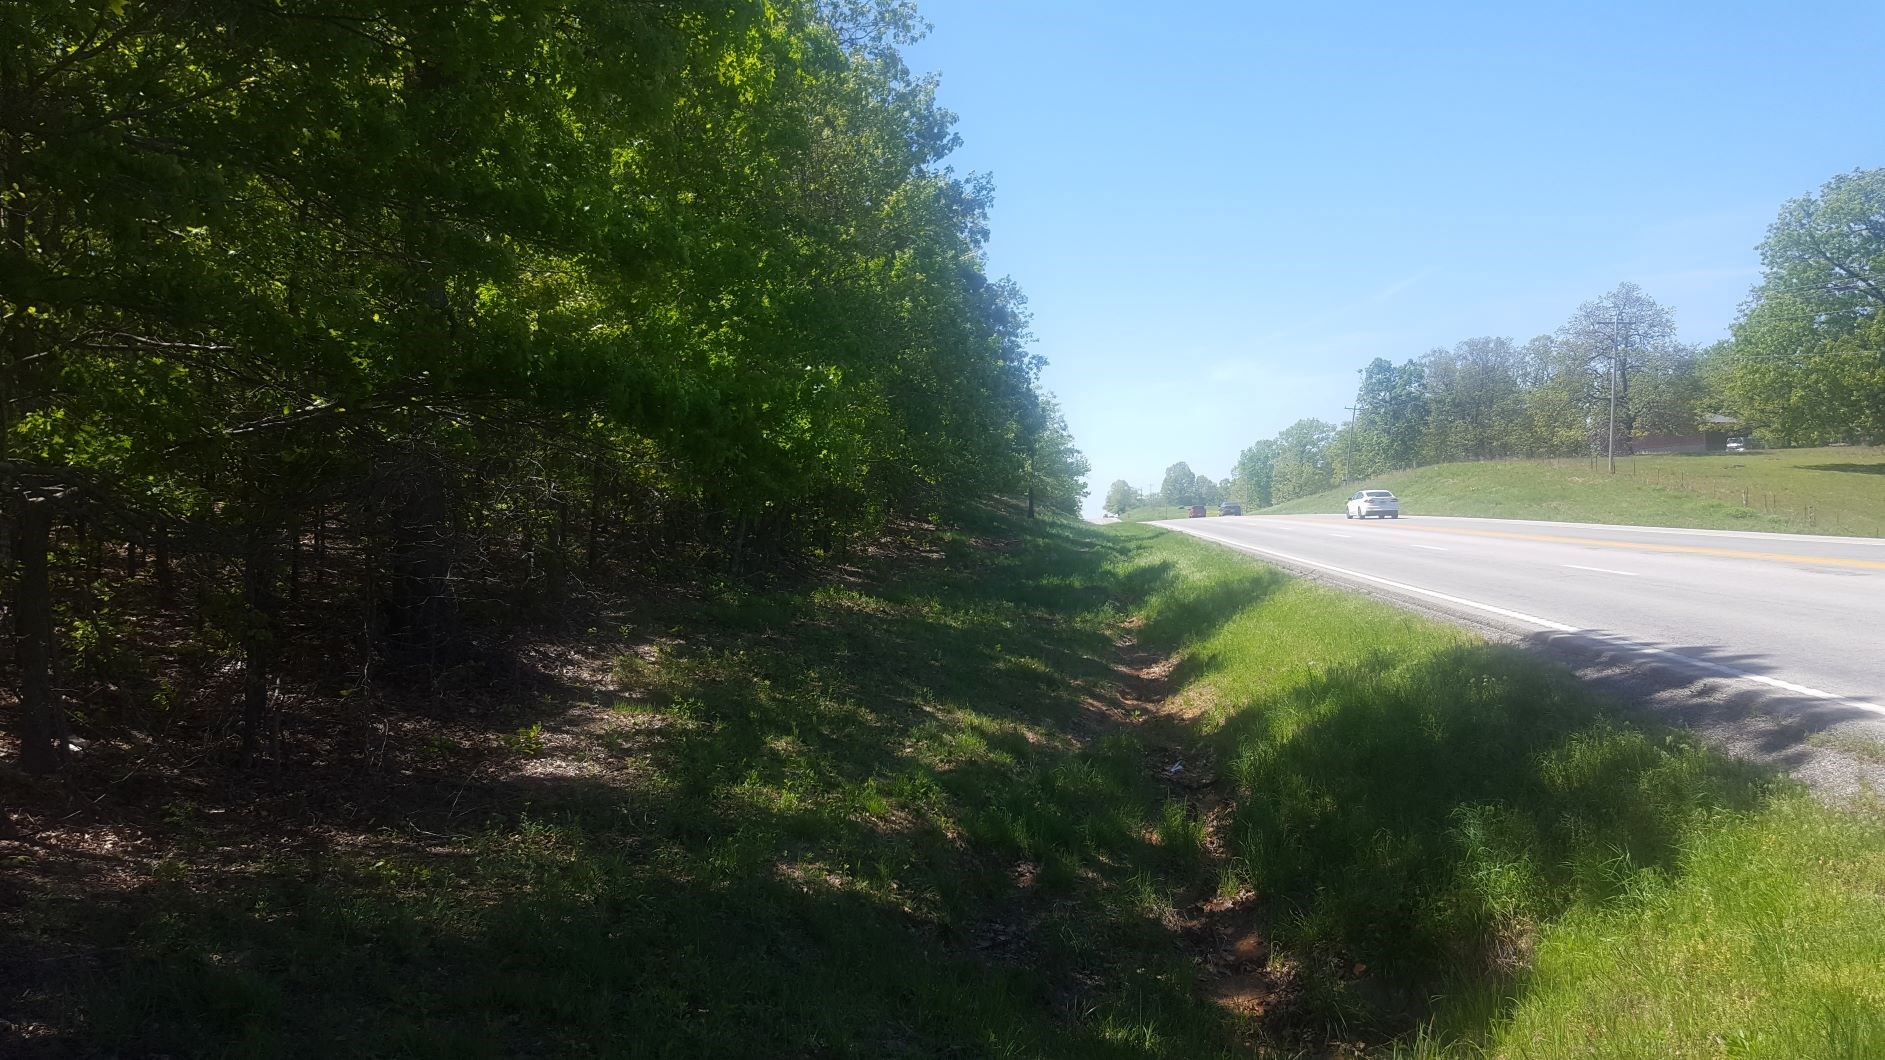 Land for Sale in Howell County, Missouri - Hunting - Build!